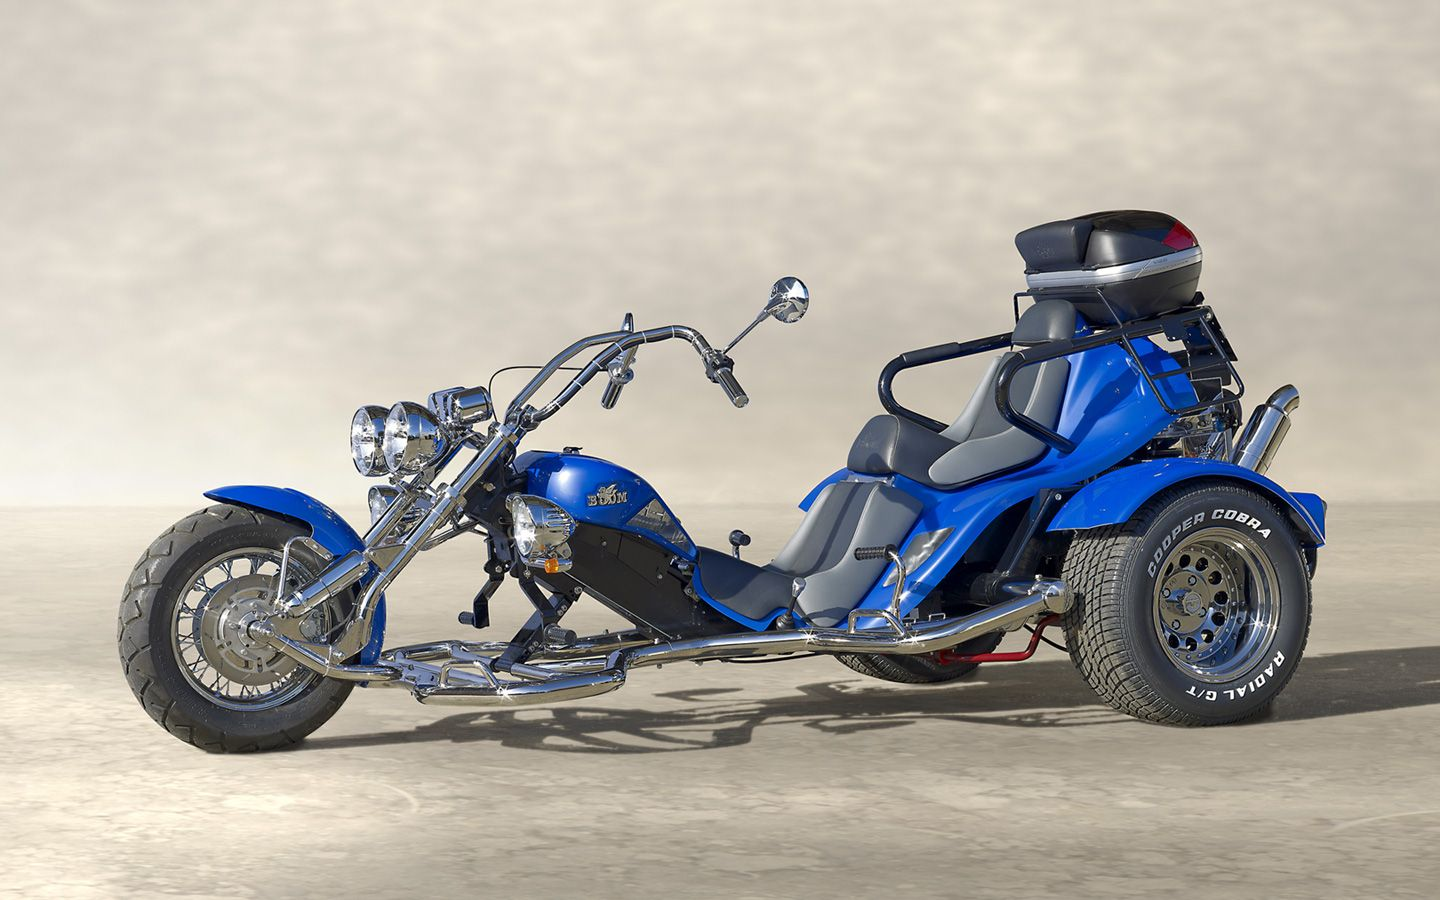 Boom trike mustang st 1 house of thunder